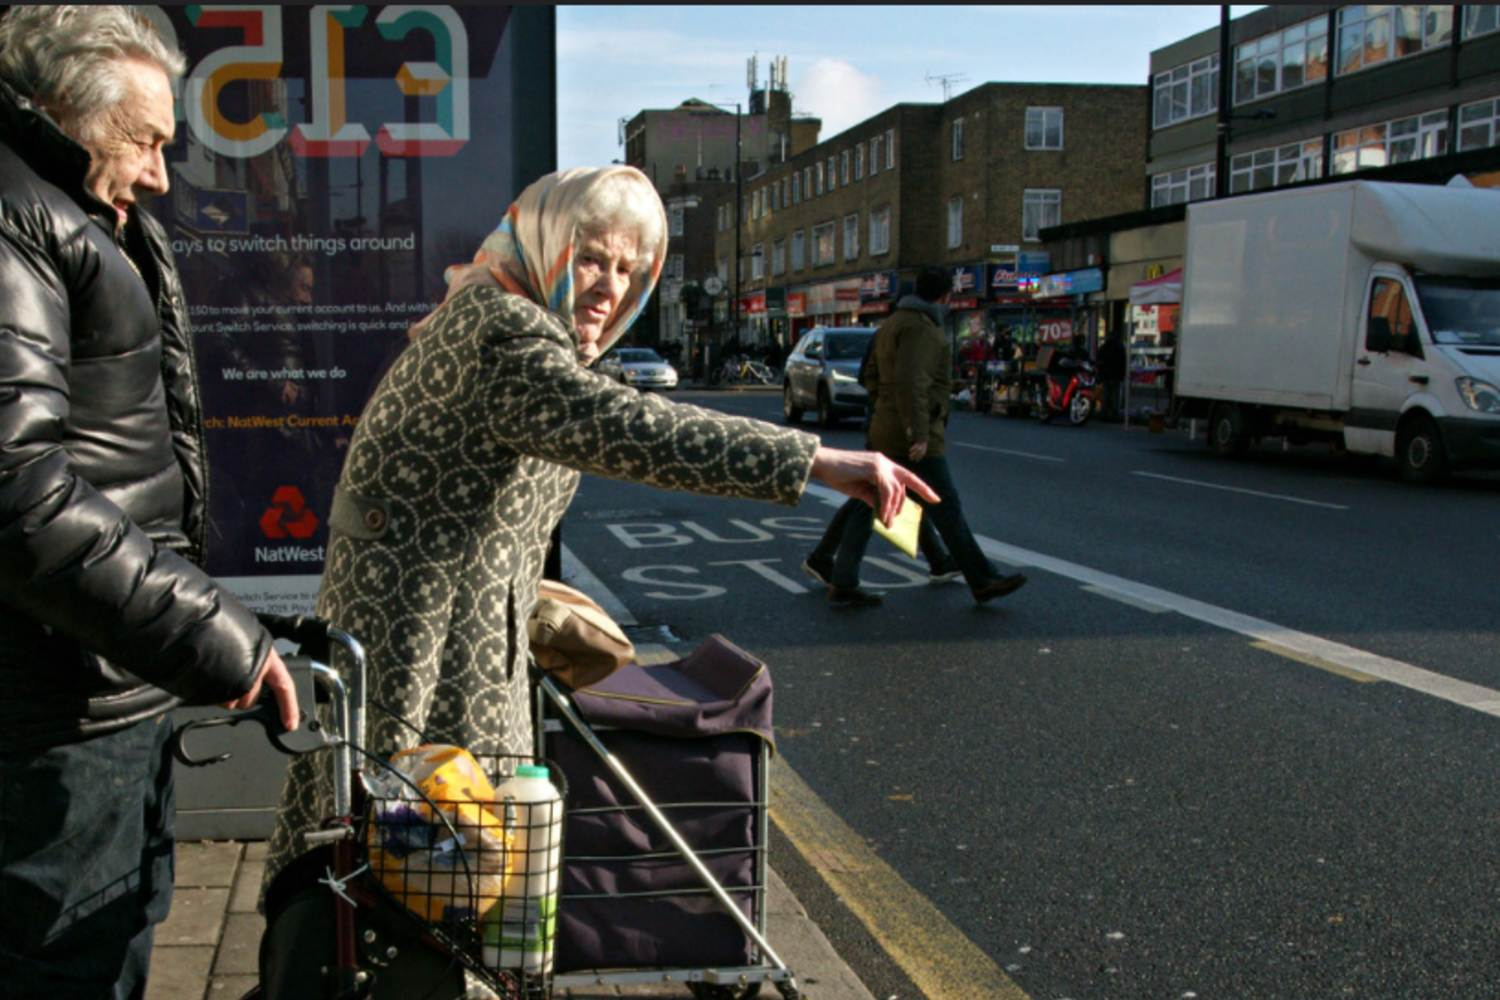 A woman flagging down a bus on Bethnal Green Road